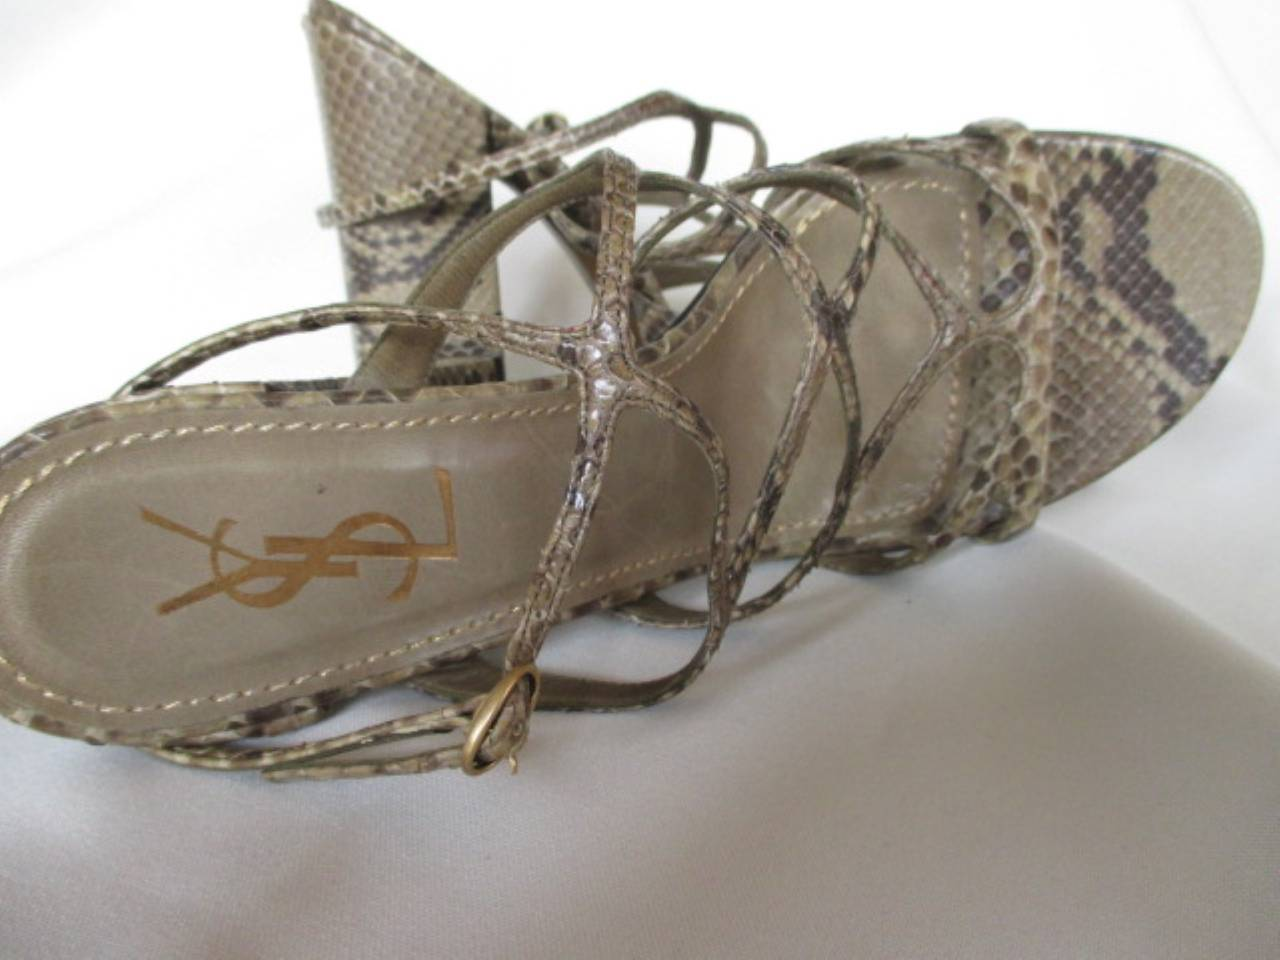 Yves saint Laurent snake leather shoes In Excellent Condition For Sale In Amsterdam, NL